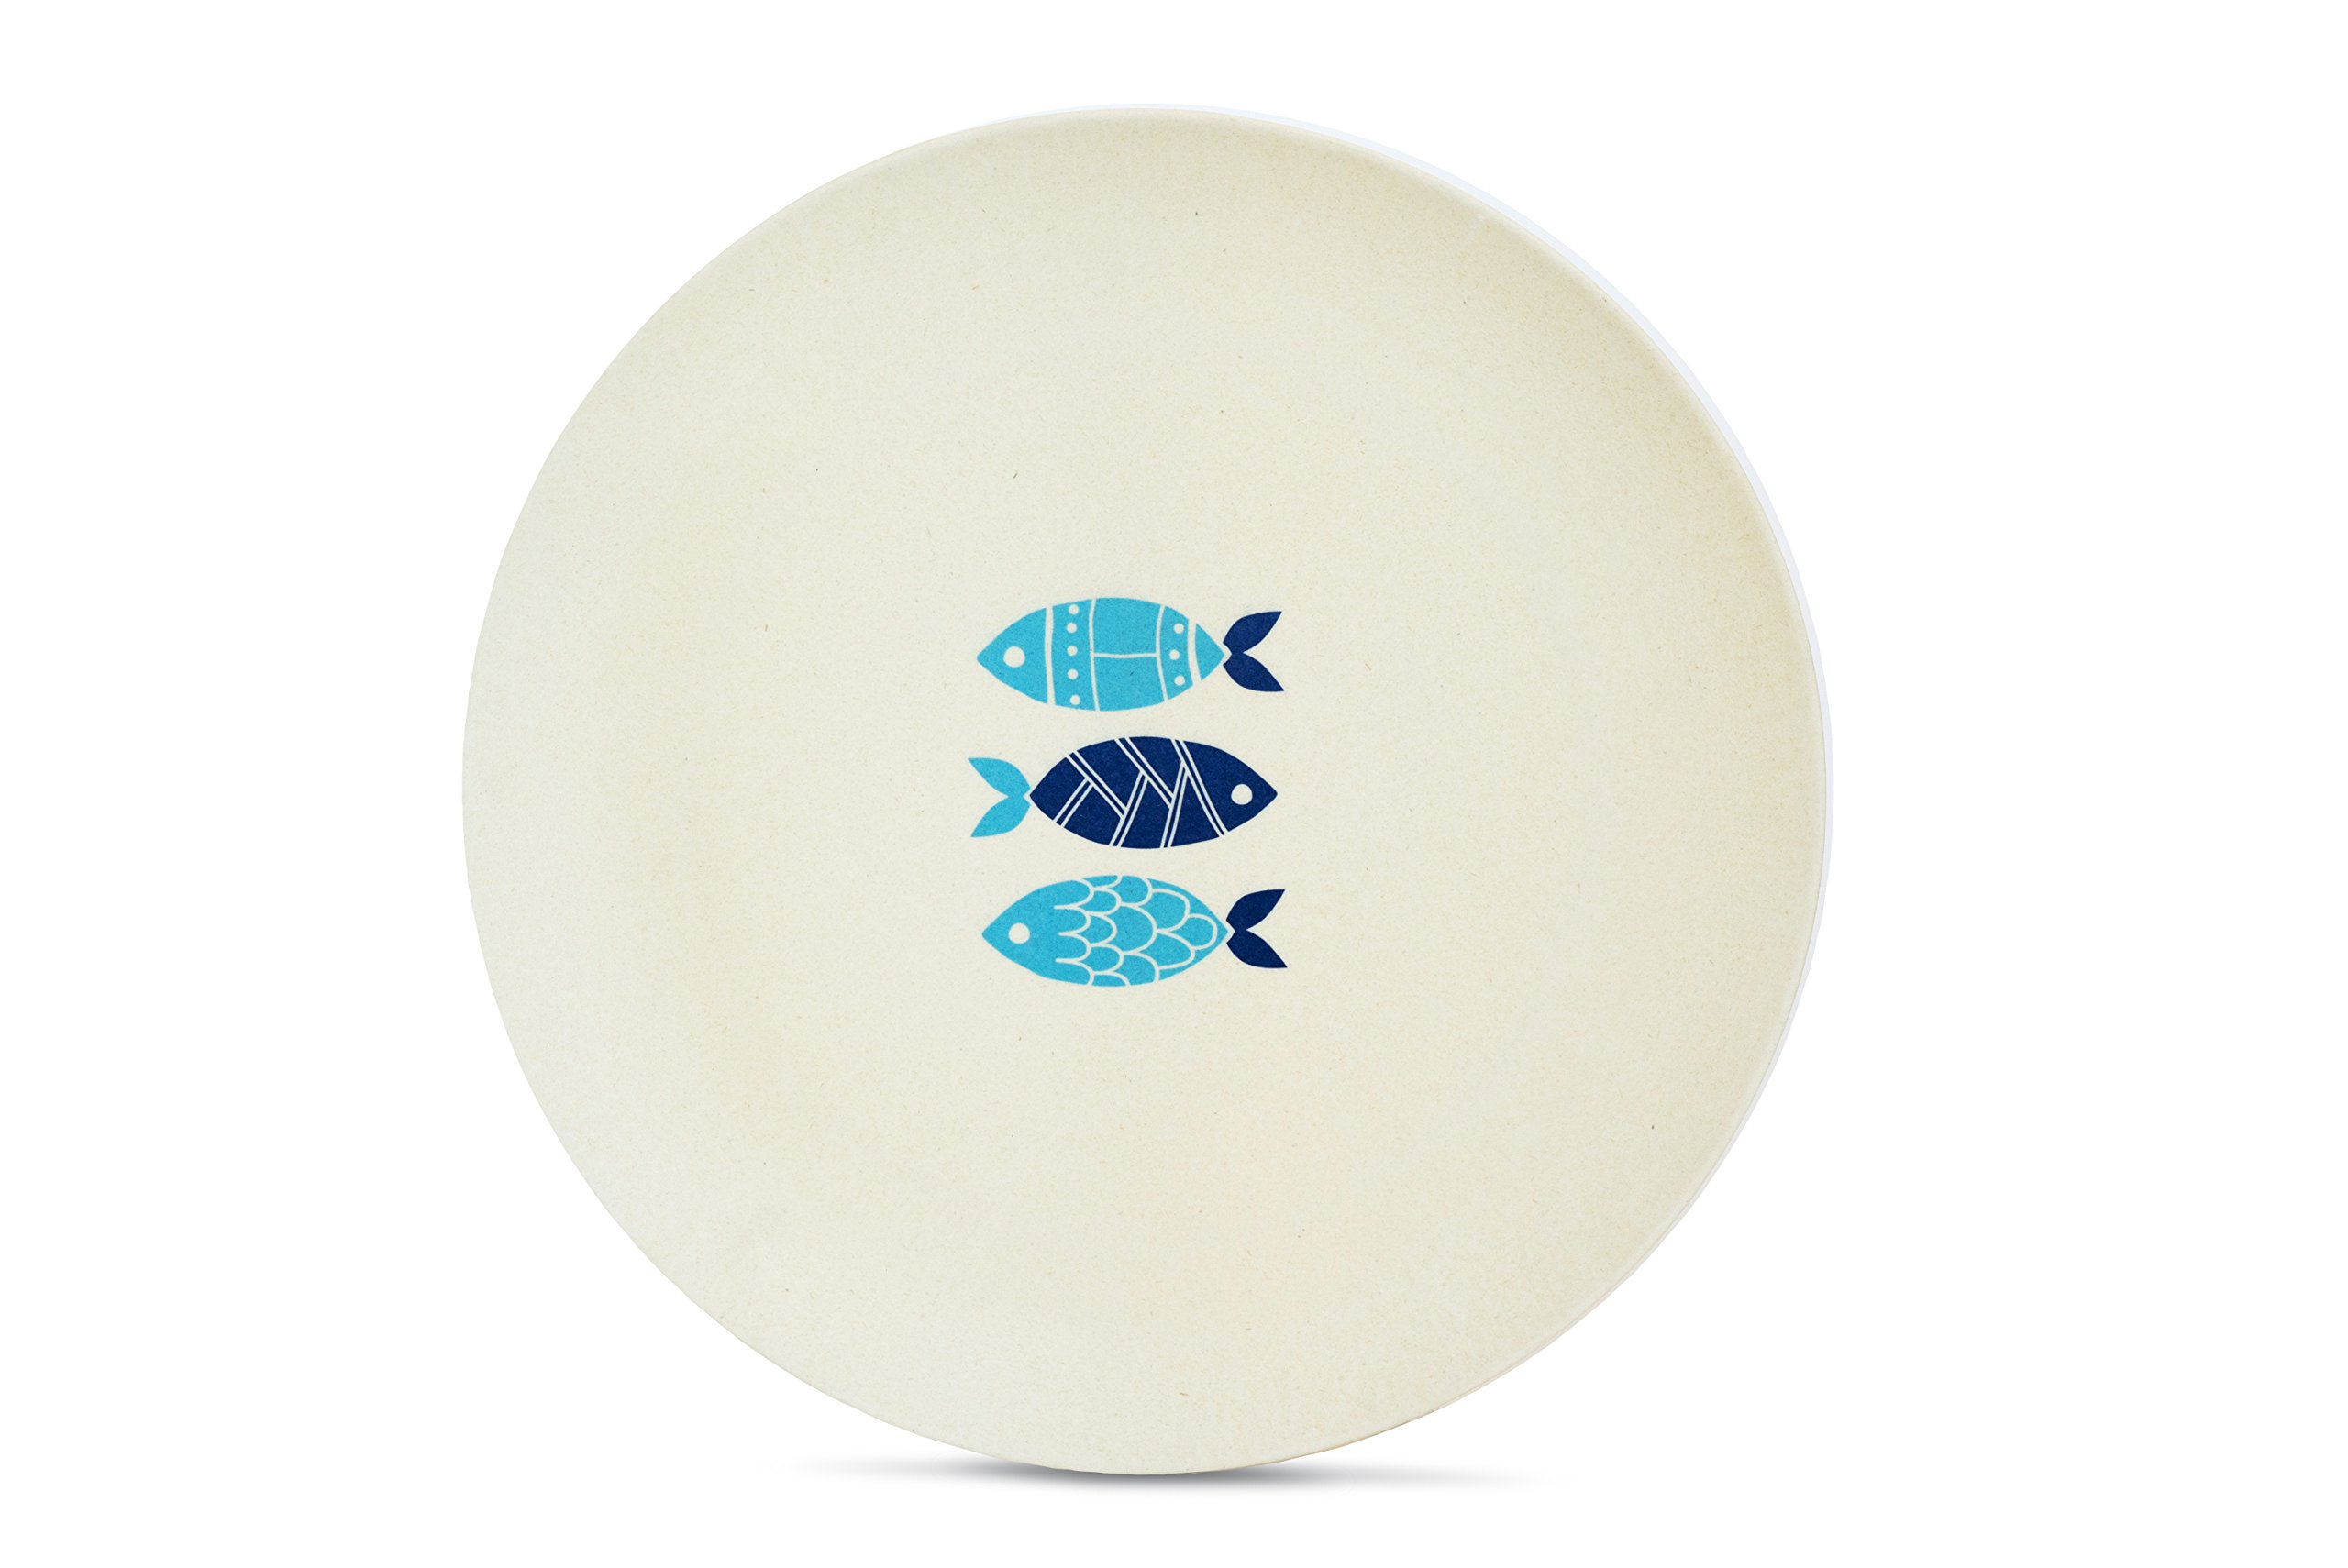 Aquaterra Living Ecofriendly Dinner Plate Set with Fish Designs- Set of 6, 10'' indoor or outdoor plates